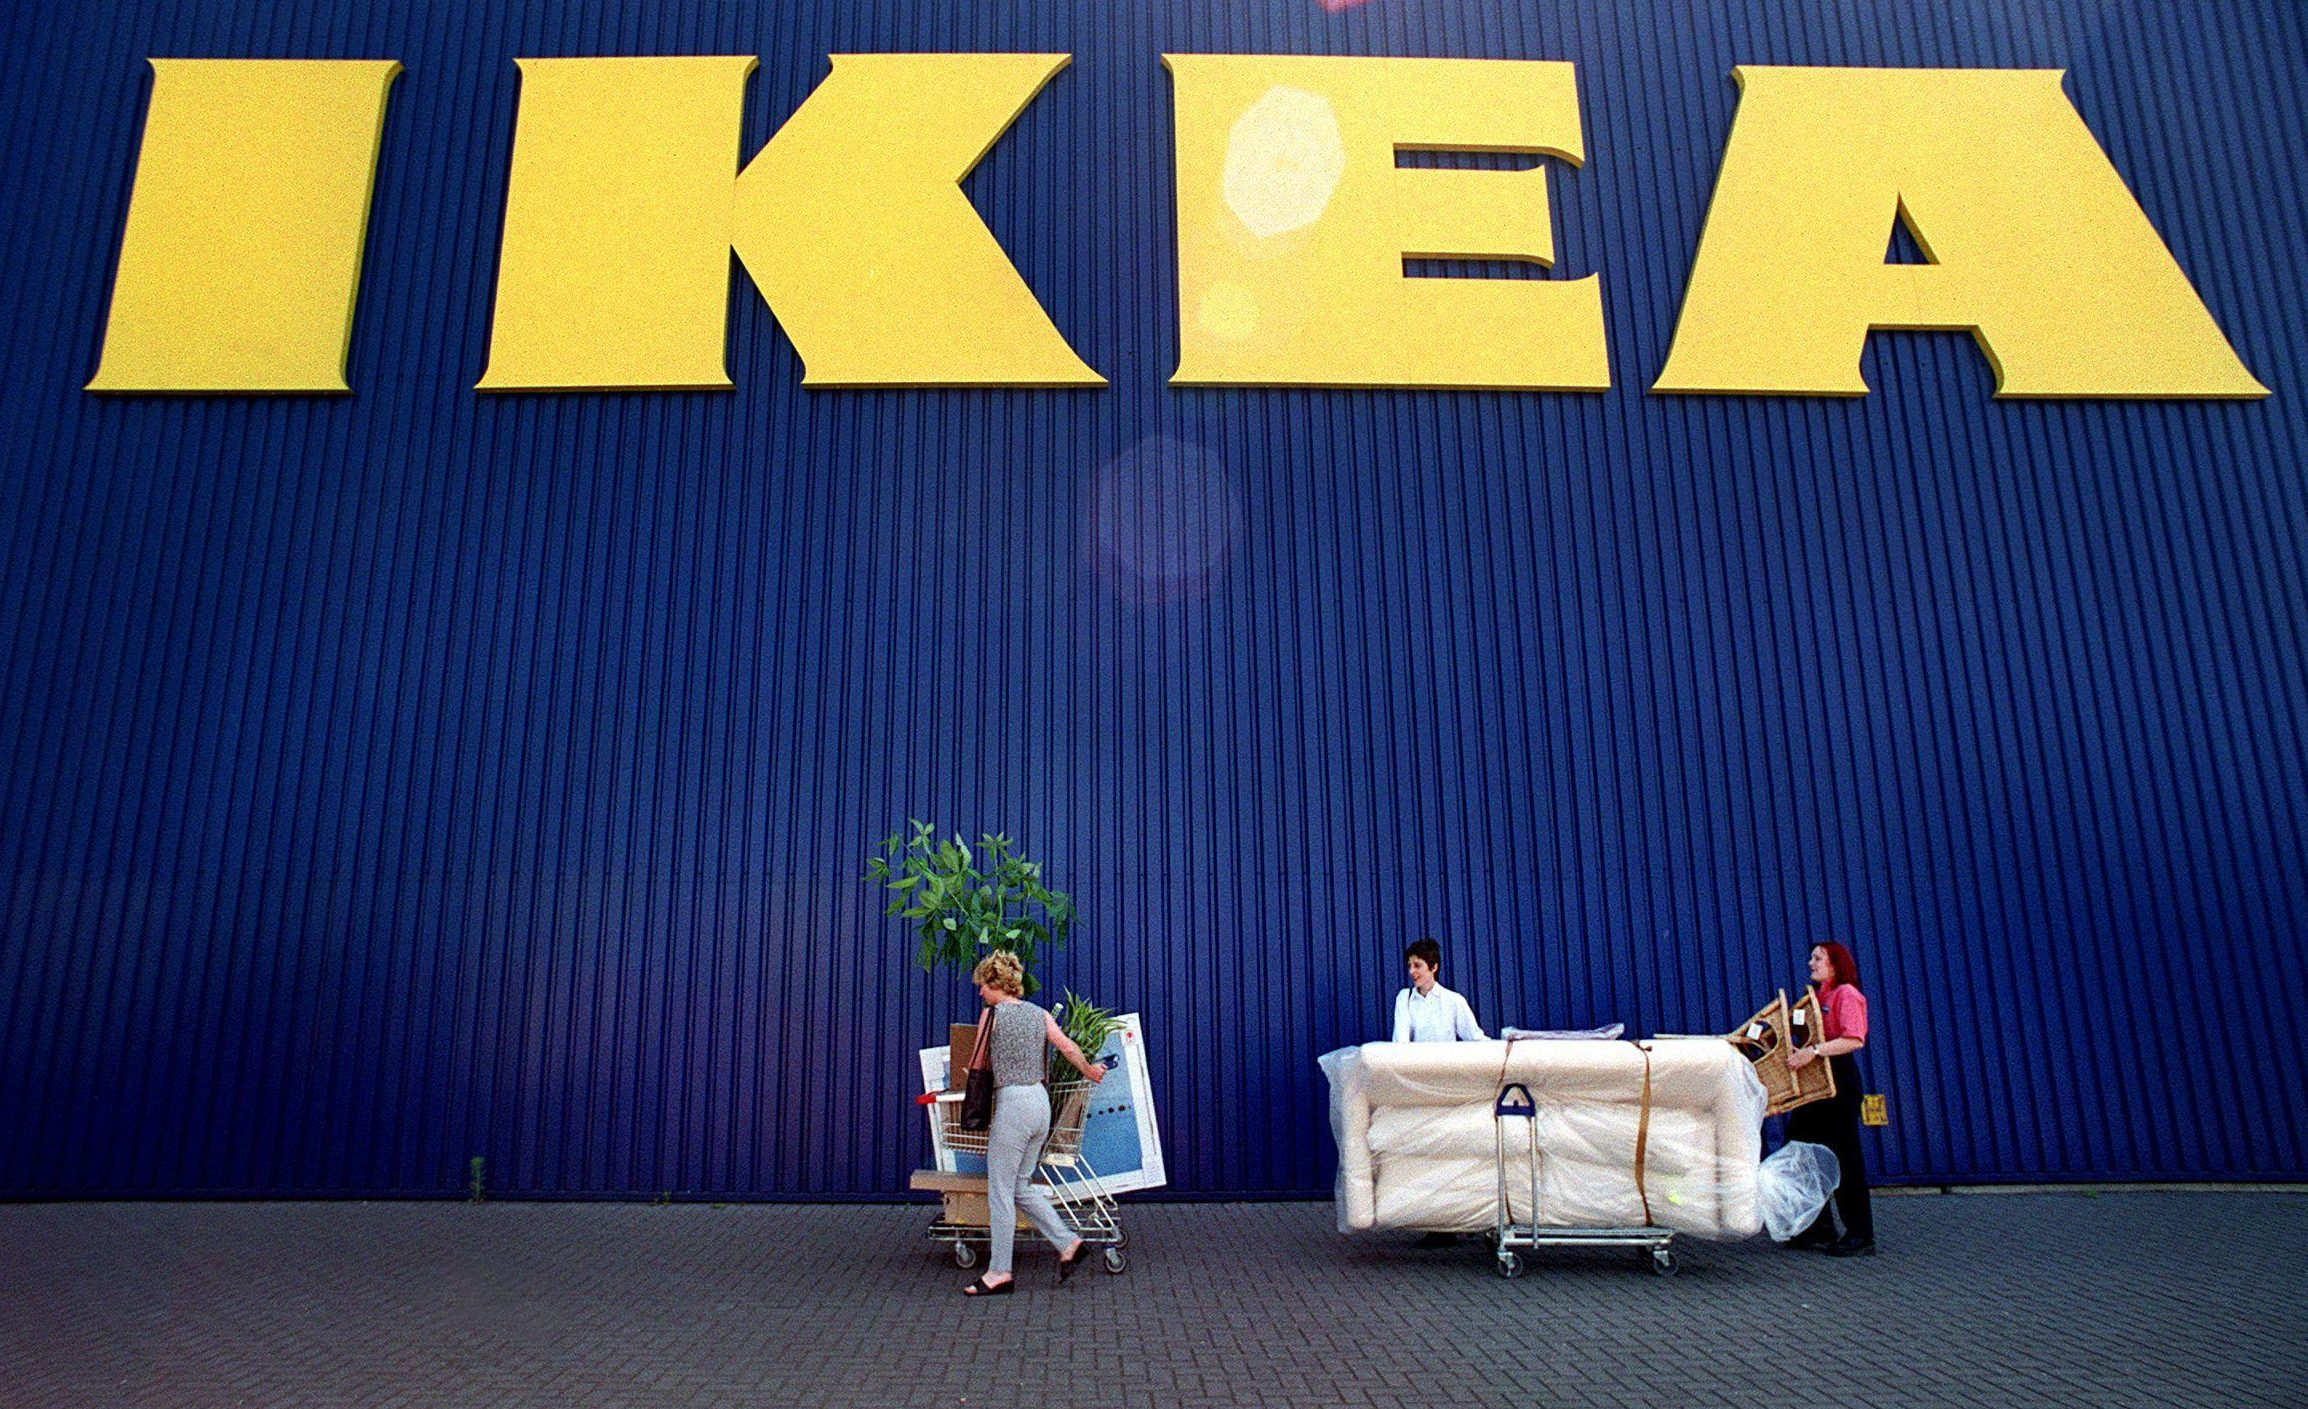 Ikea Bank Holiday Opening Times Warrington Ikea Uk Opening Hours Kreasi Rumah